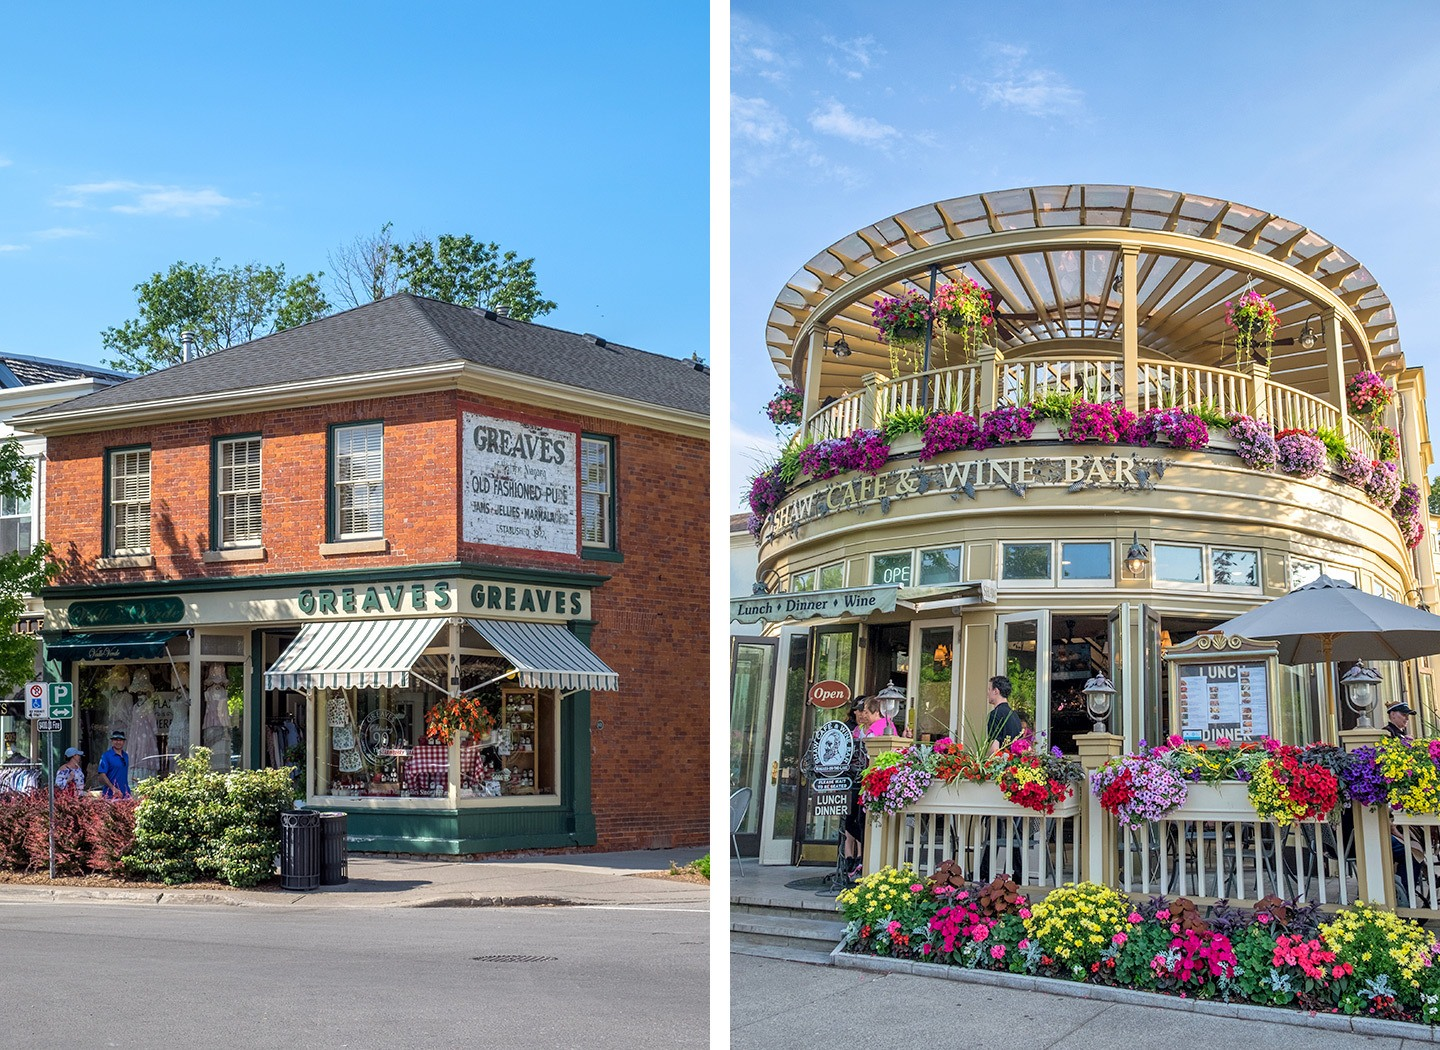 Niagara-on-the-Lake's heritage district, Canada